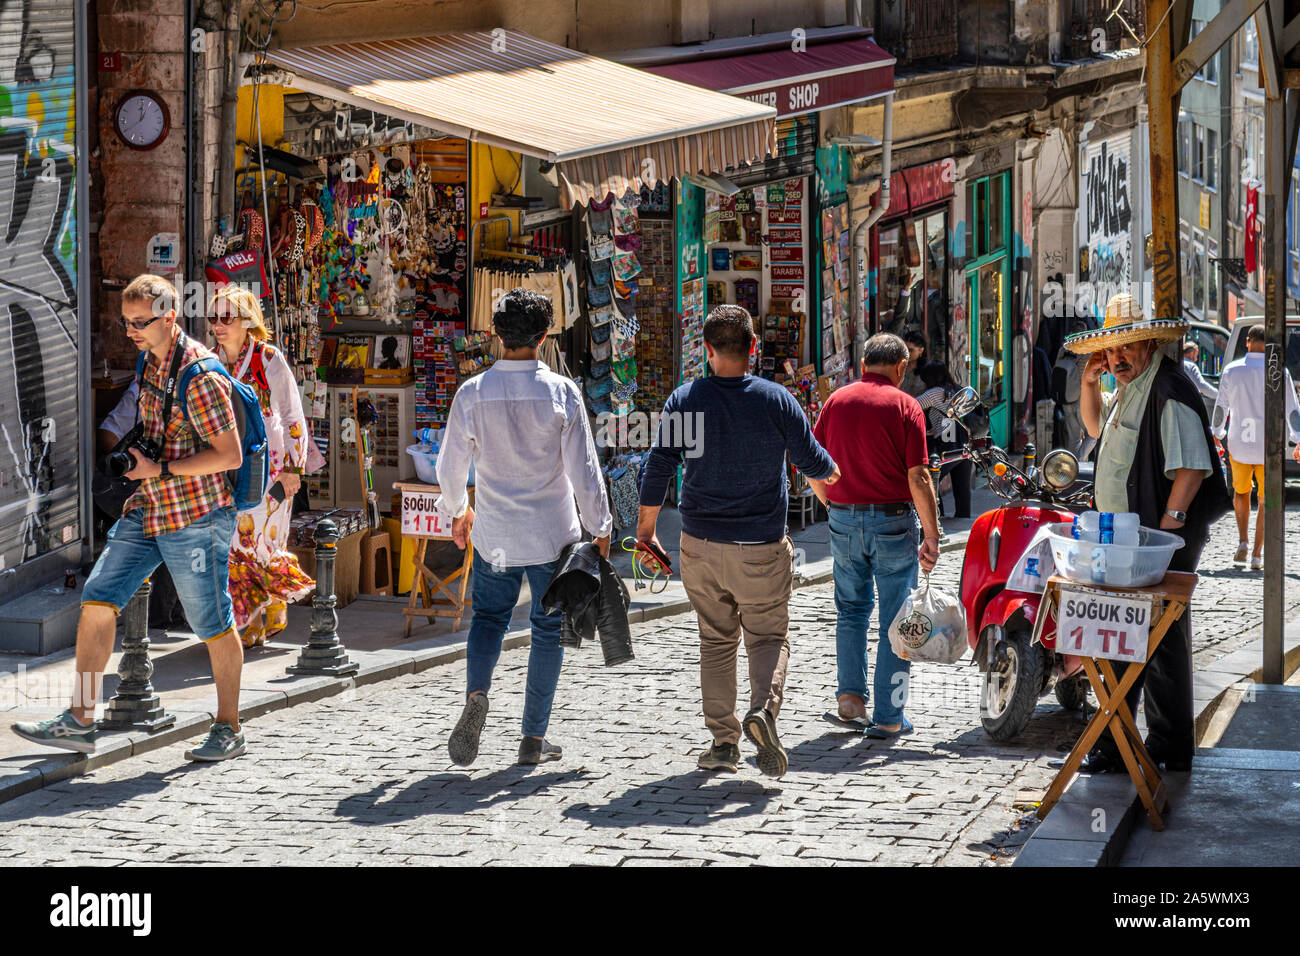 A Turk sells bottled water on the sidewalk near souvenir and colorful gift shops in the hilly Galata district of Istanbul Turkey Stock Photo